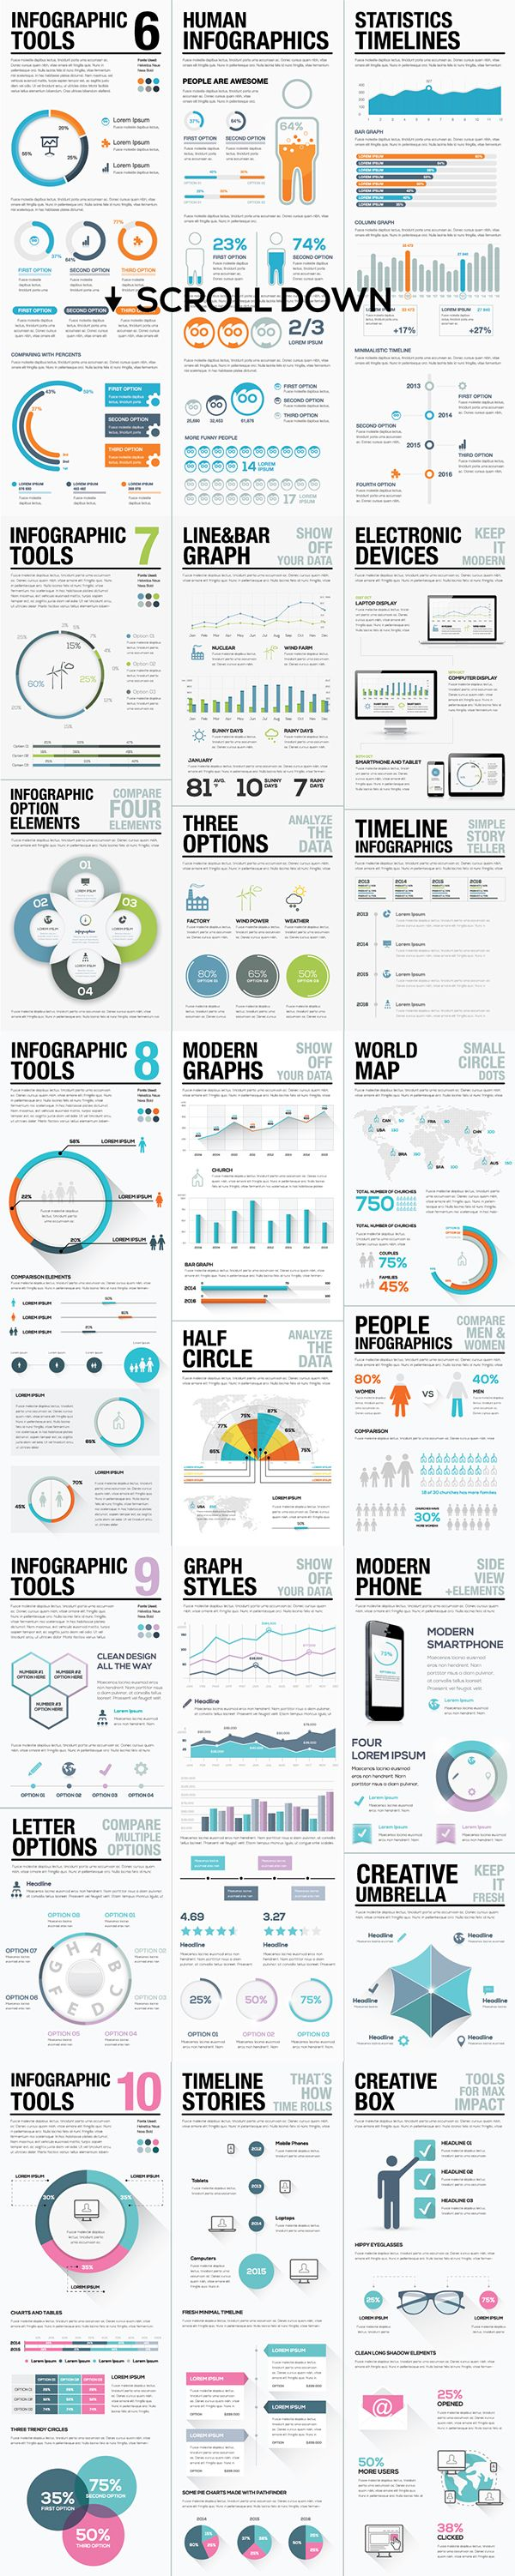 Infographic Elements Bundle on Behance